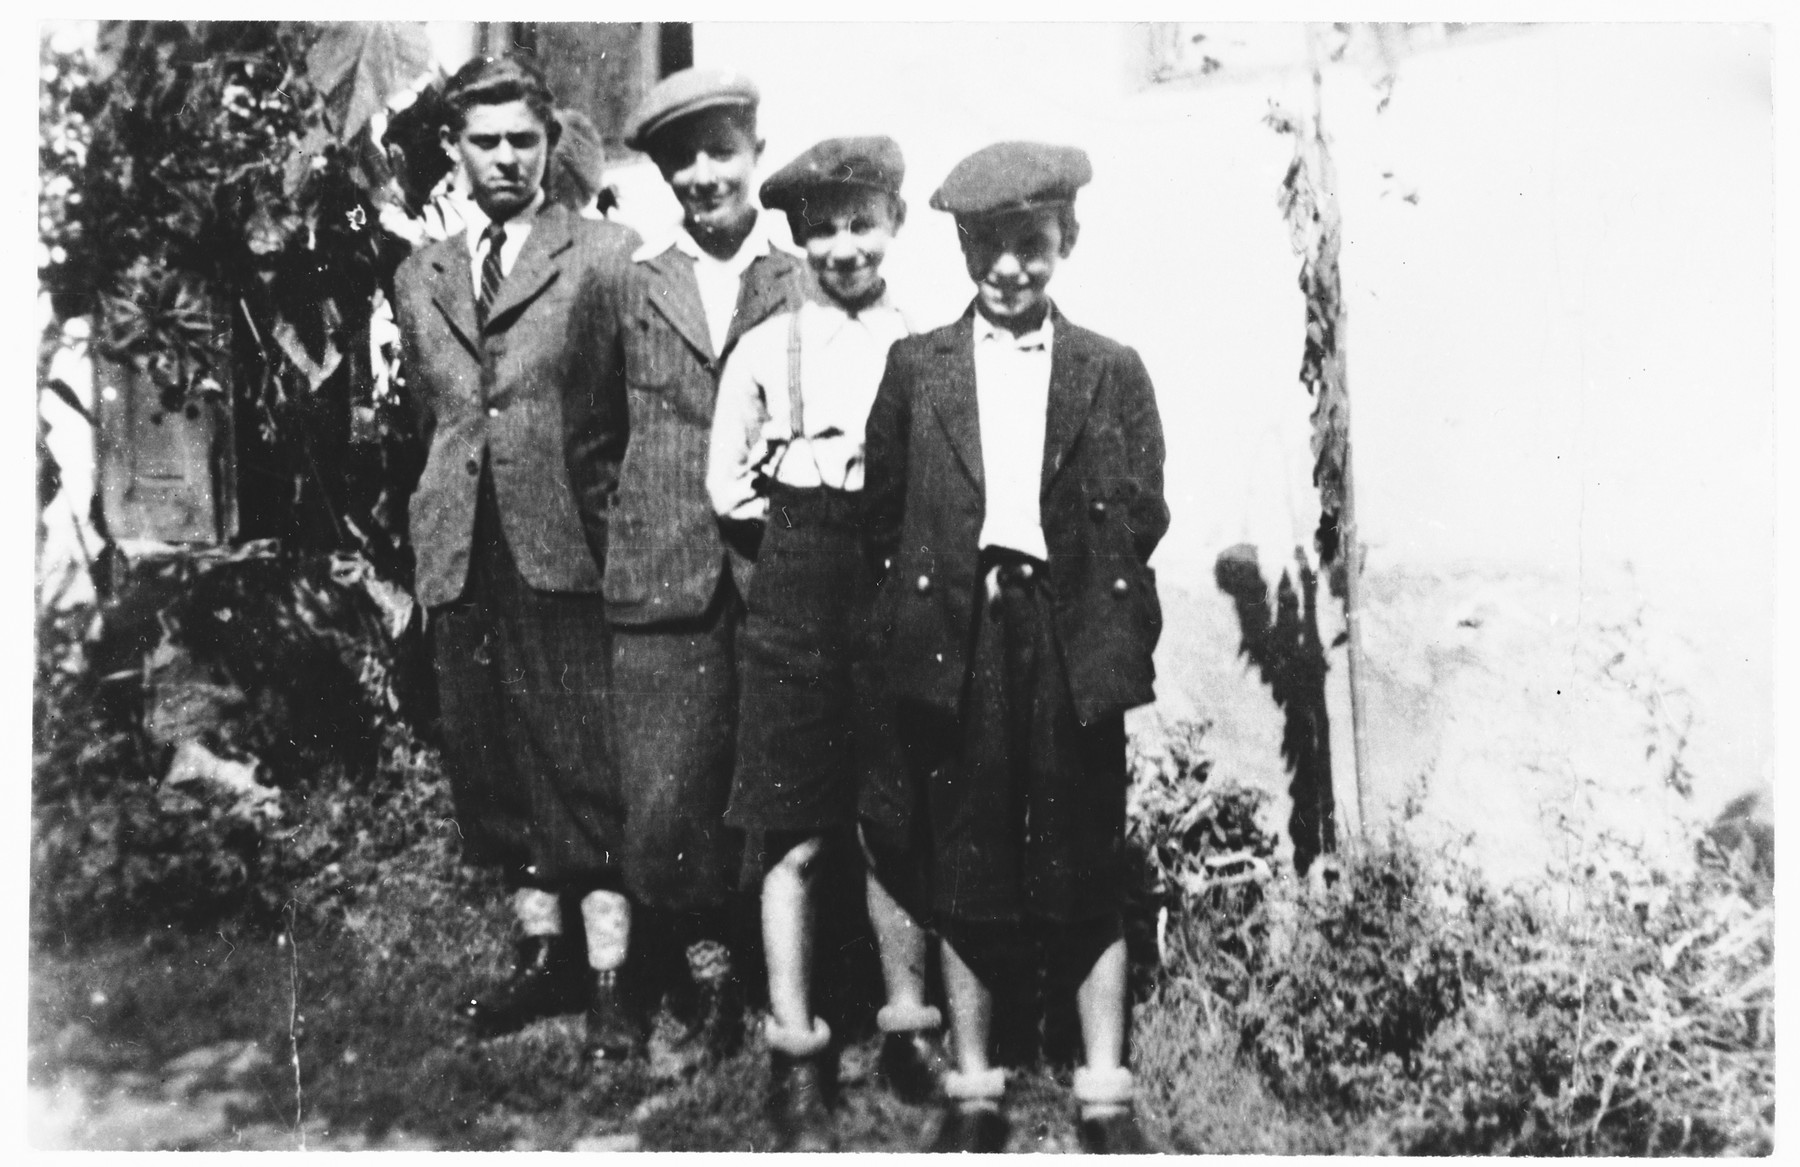 Shlomo, Jakob, Leibush and Dovid Weinberger stand outside their family's house in Mukachevo.